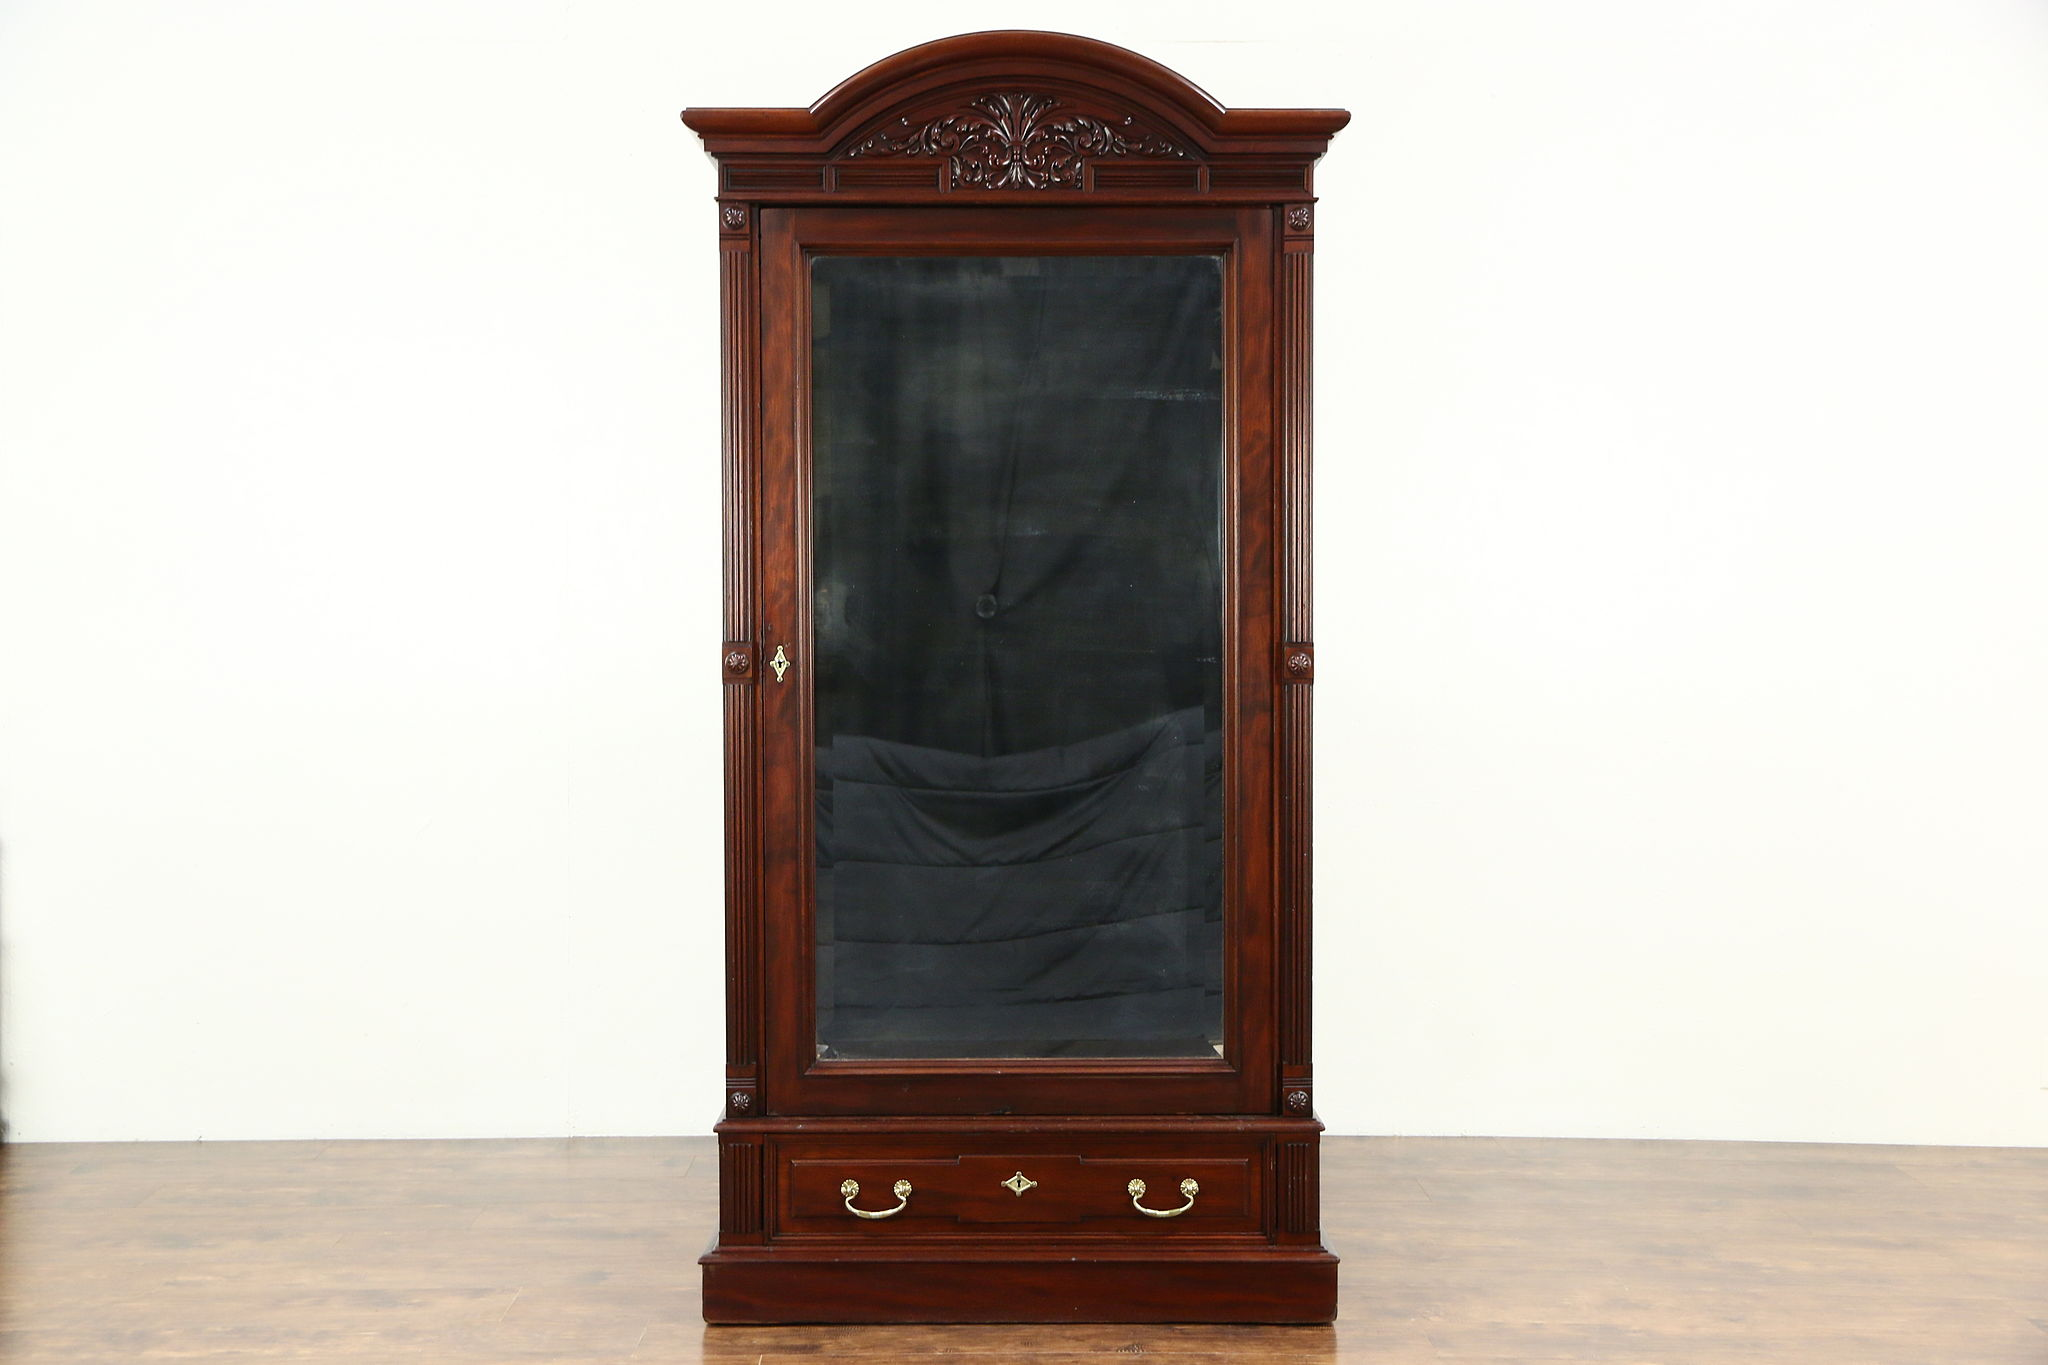 id pieces century case wardrobes breakfront walnut master antique at f storage circa furniture and wardrobe armoires victorian armoire